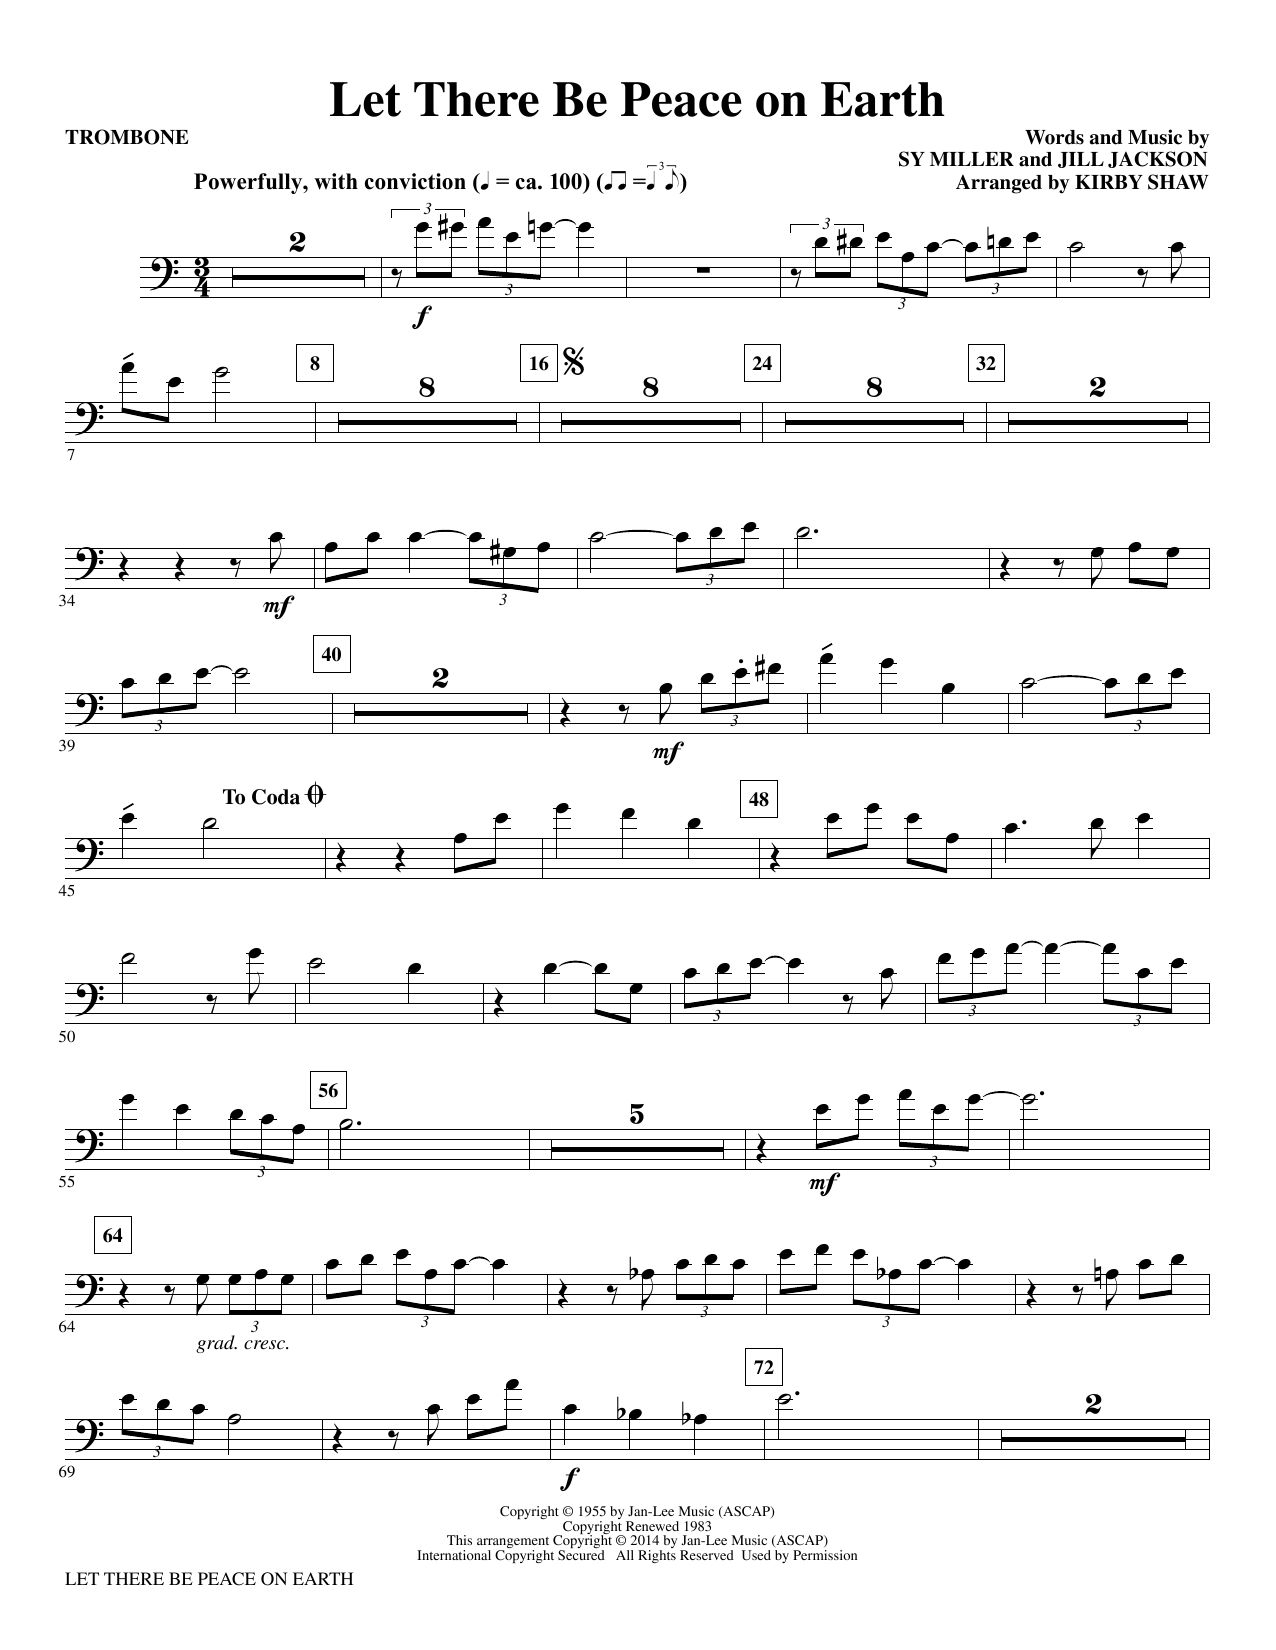 Let There Be Peace on Earth - Trombone Sheet Music